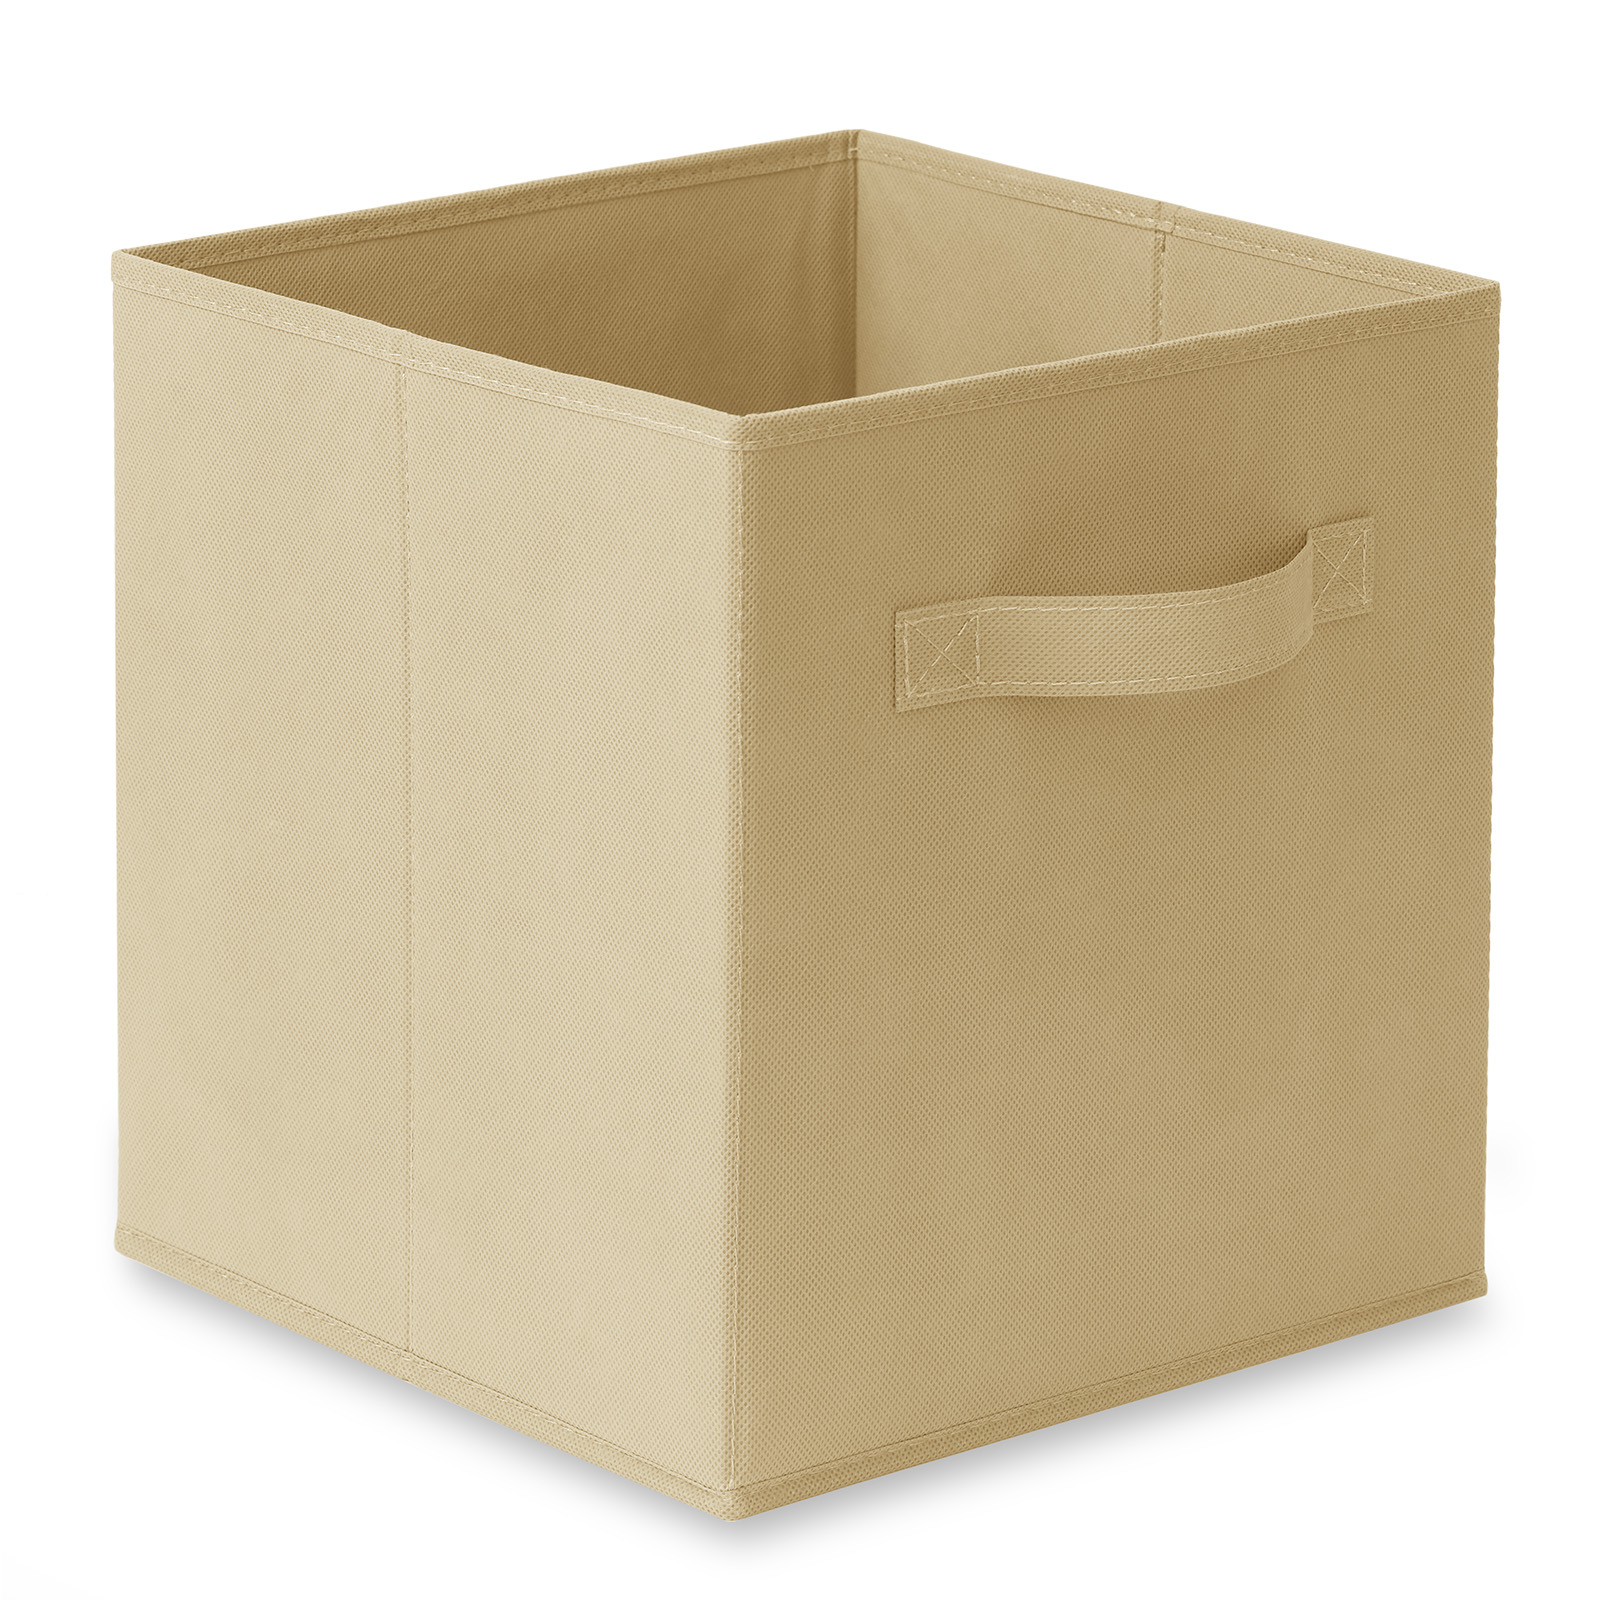 6-Collapsible-Foldable-Cloth-Fabric-Cubby-Cube-Storage-Bins-Baskets-for-Shelves thumbnail 72